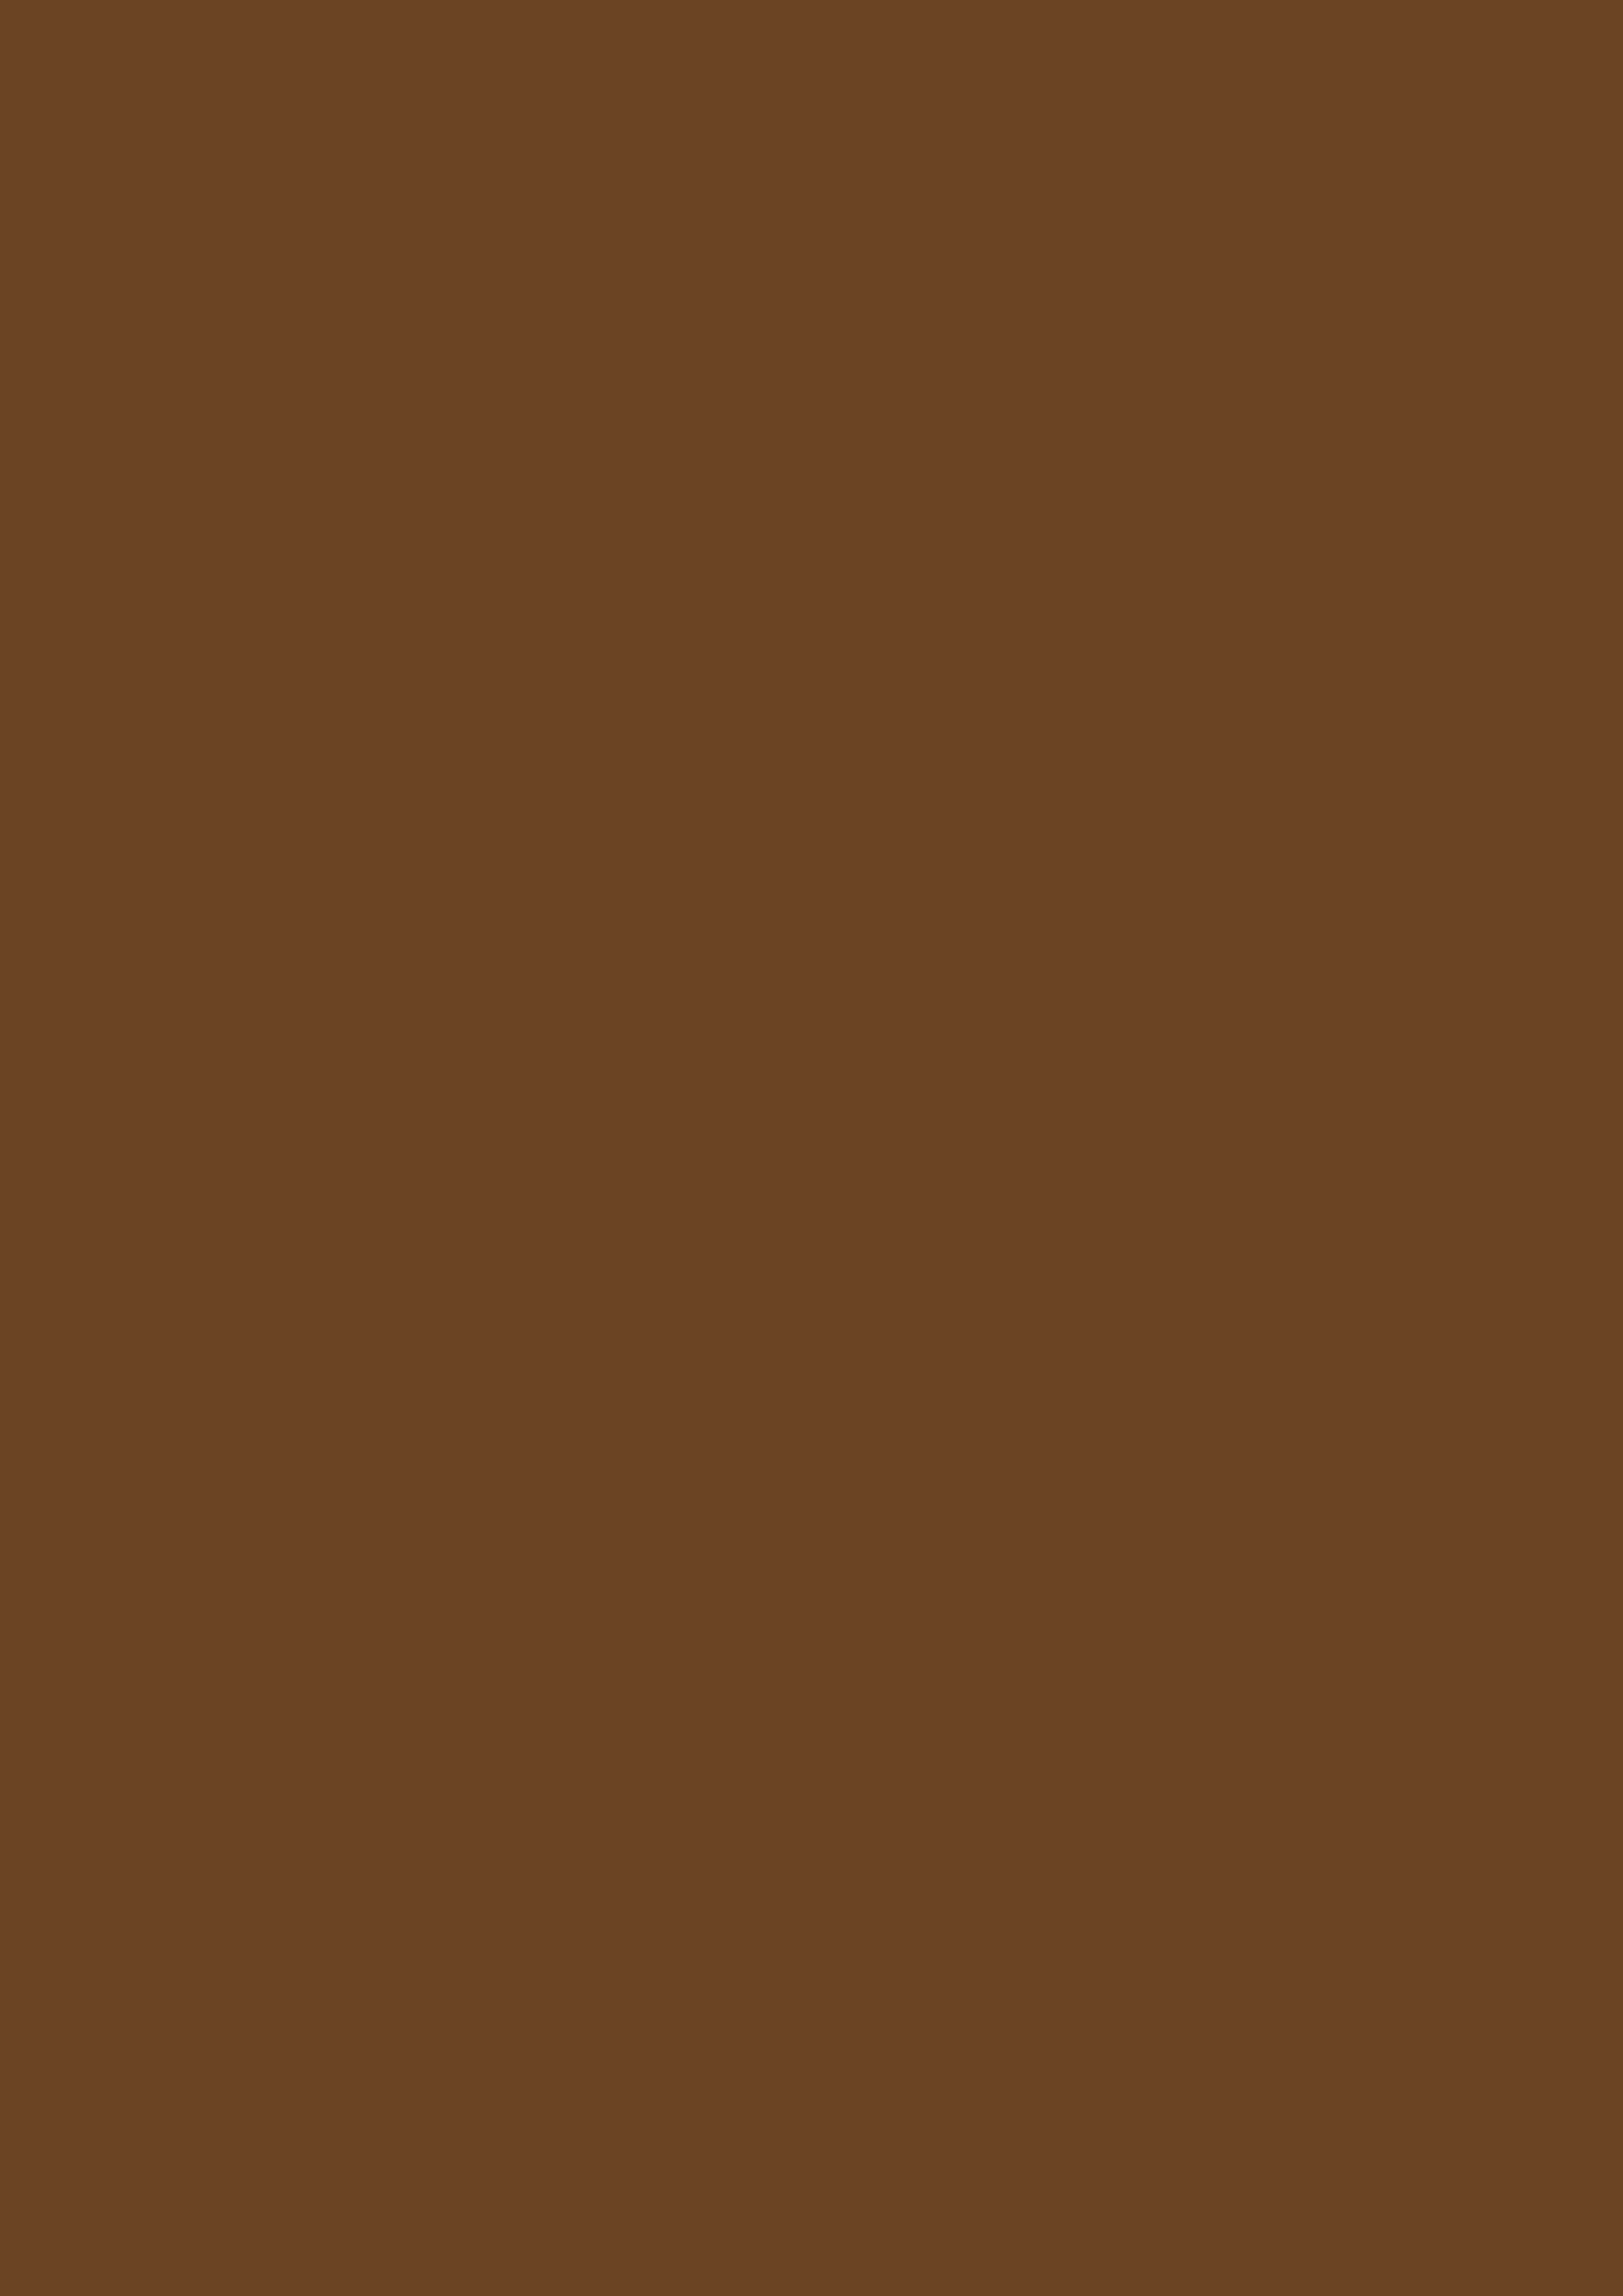 2480x3508 Brown-nose Solid Color Background